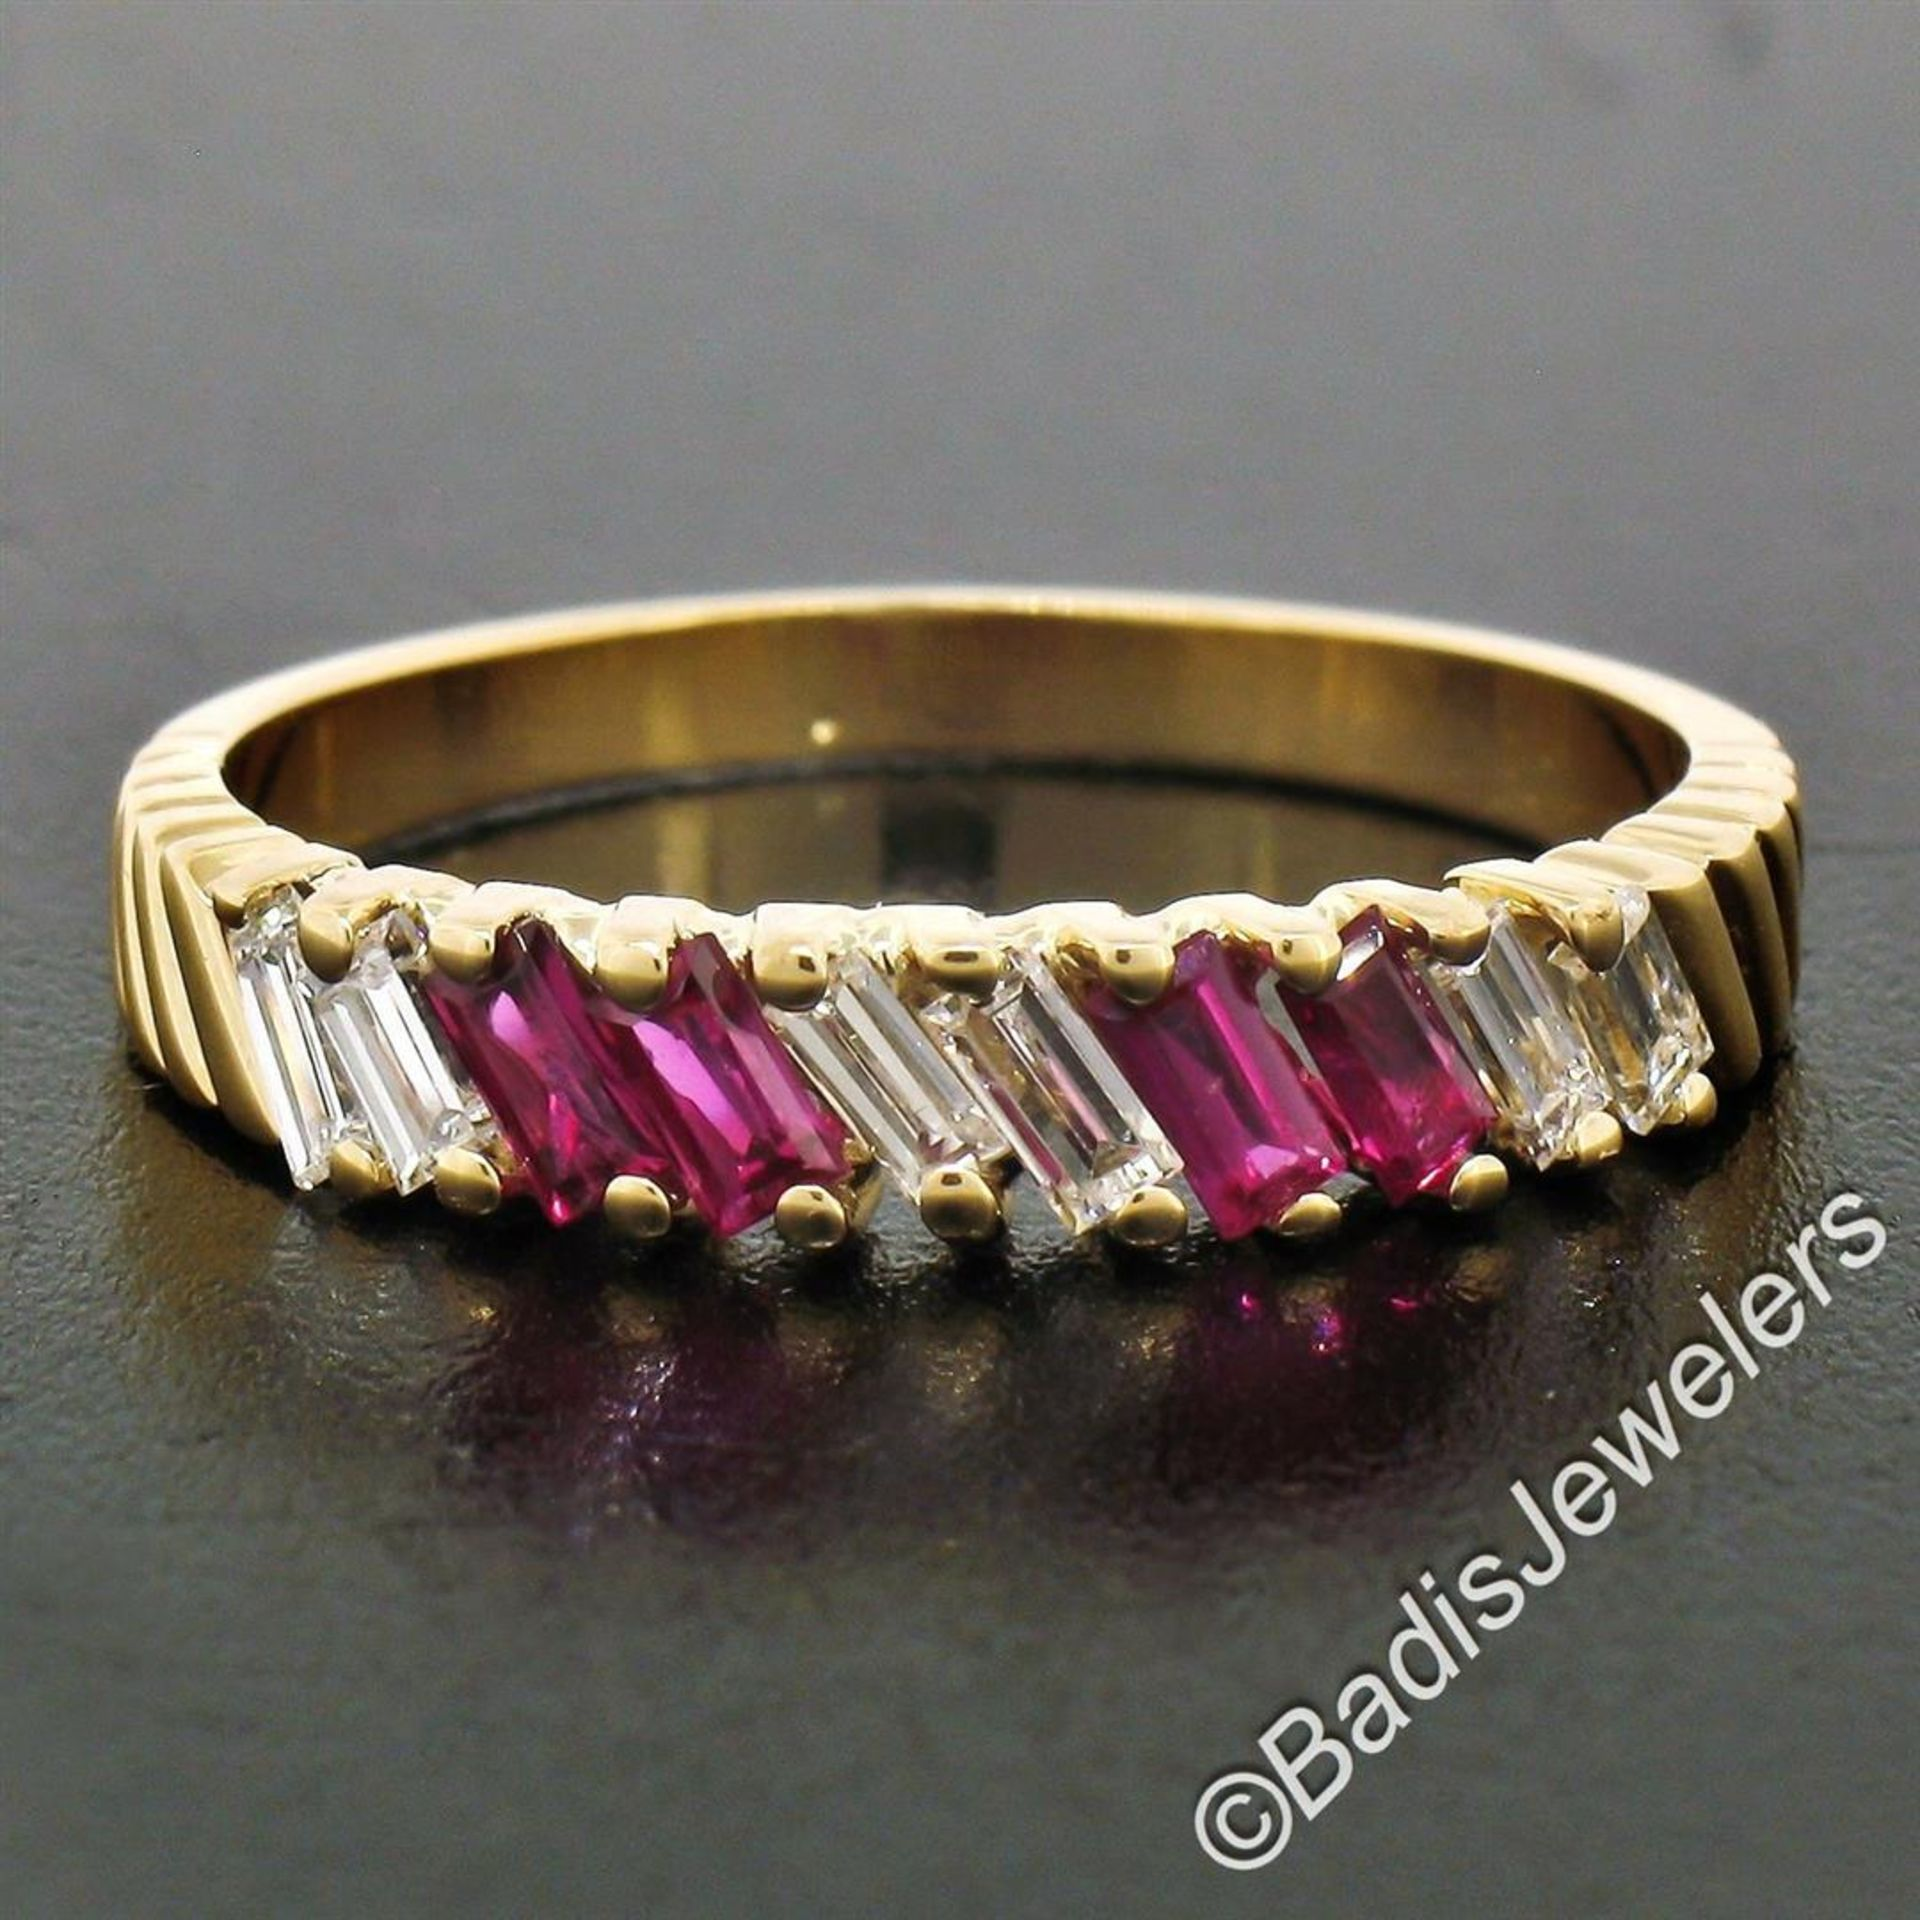 Vintage 18kt Yellow Gold 0.75ctw Baguette Diamond and Ruby Band Ring - Image 5 of 6